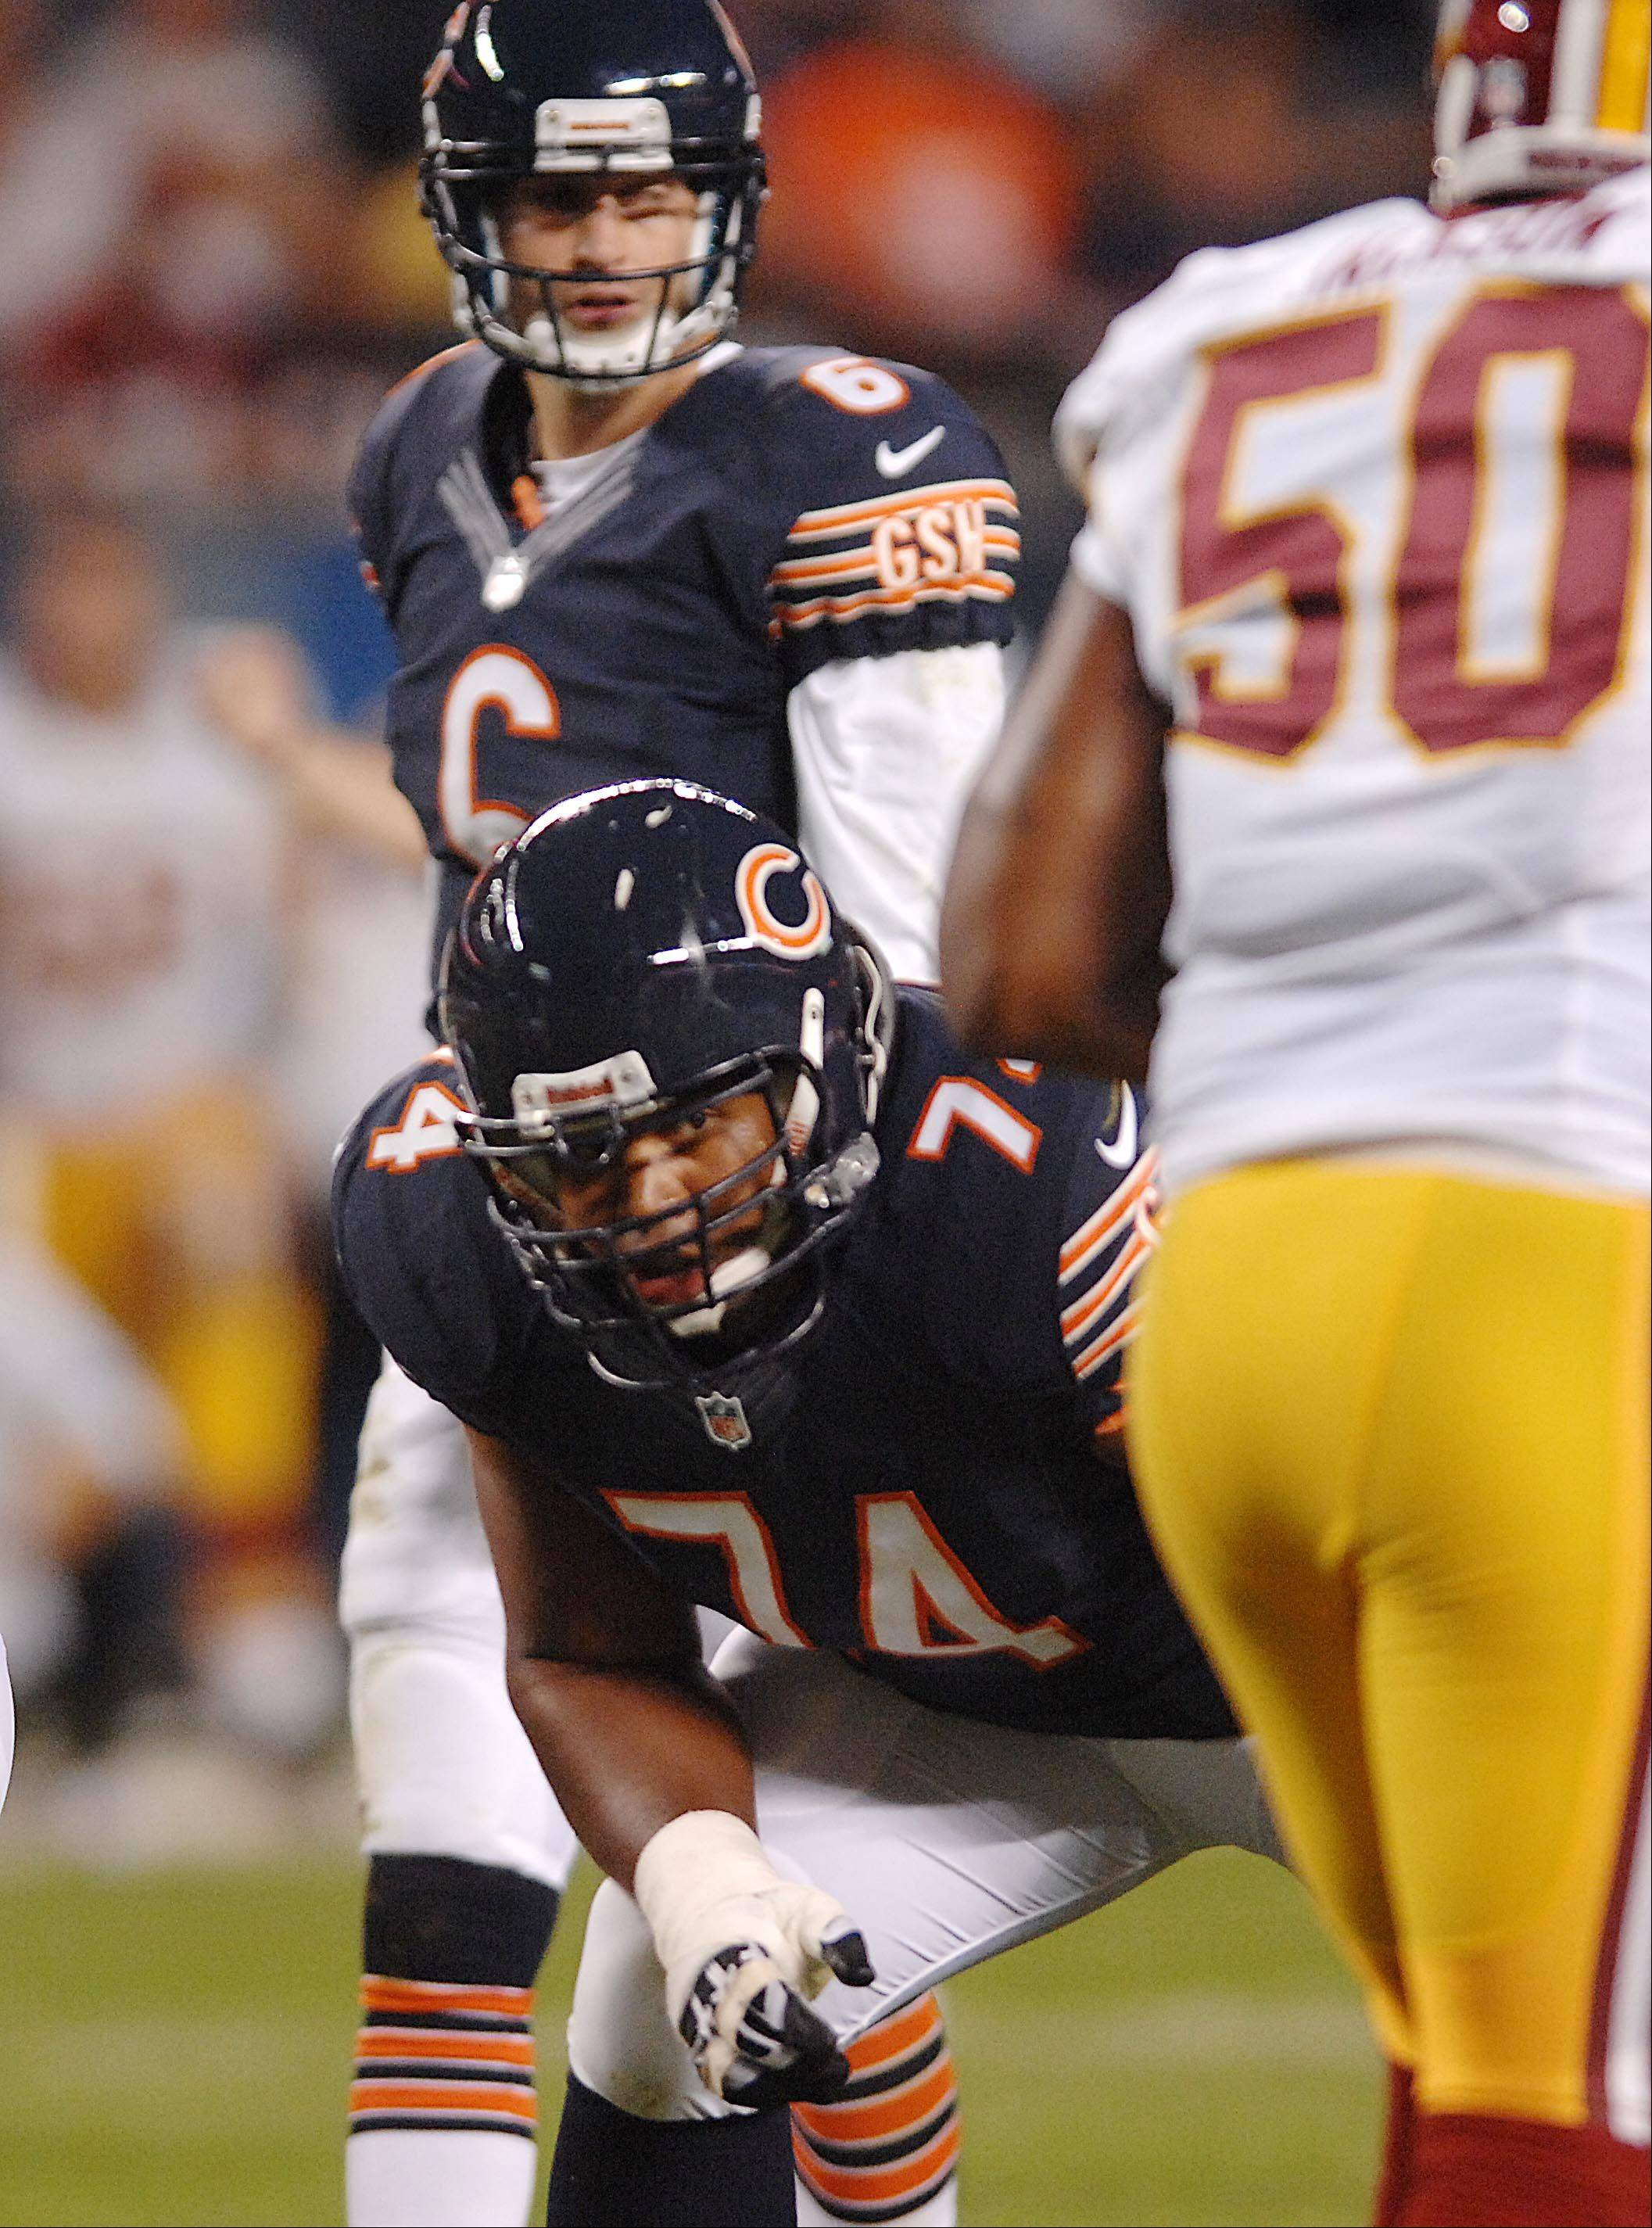 Chicago Bears offensive tackle Chris Williams lines up with Jay cutler behind him Saturday against the Washington Redskins in the second preseason game at Soldier Field in Chicago.